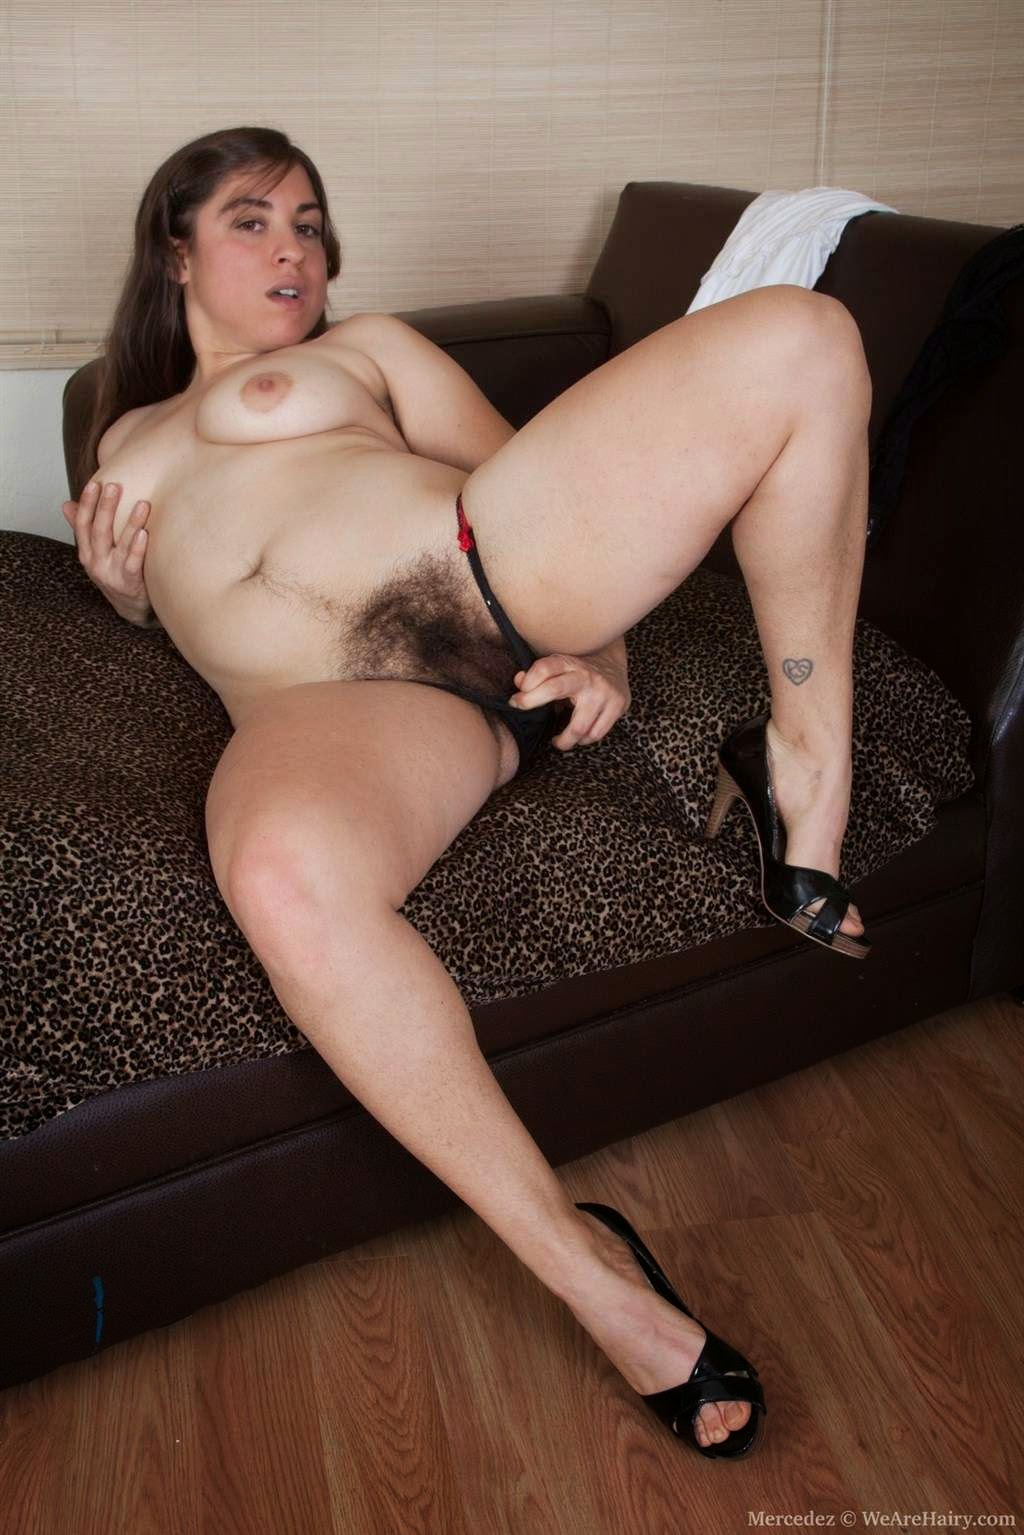 Diarty slut mom